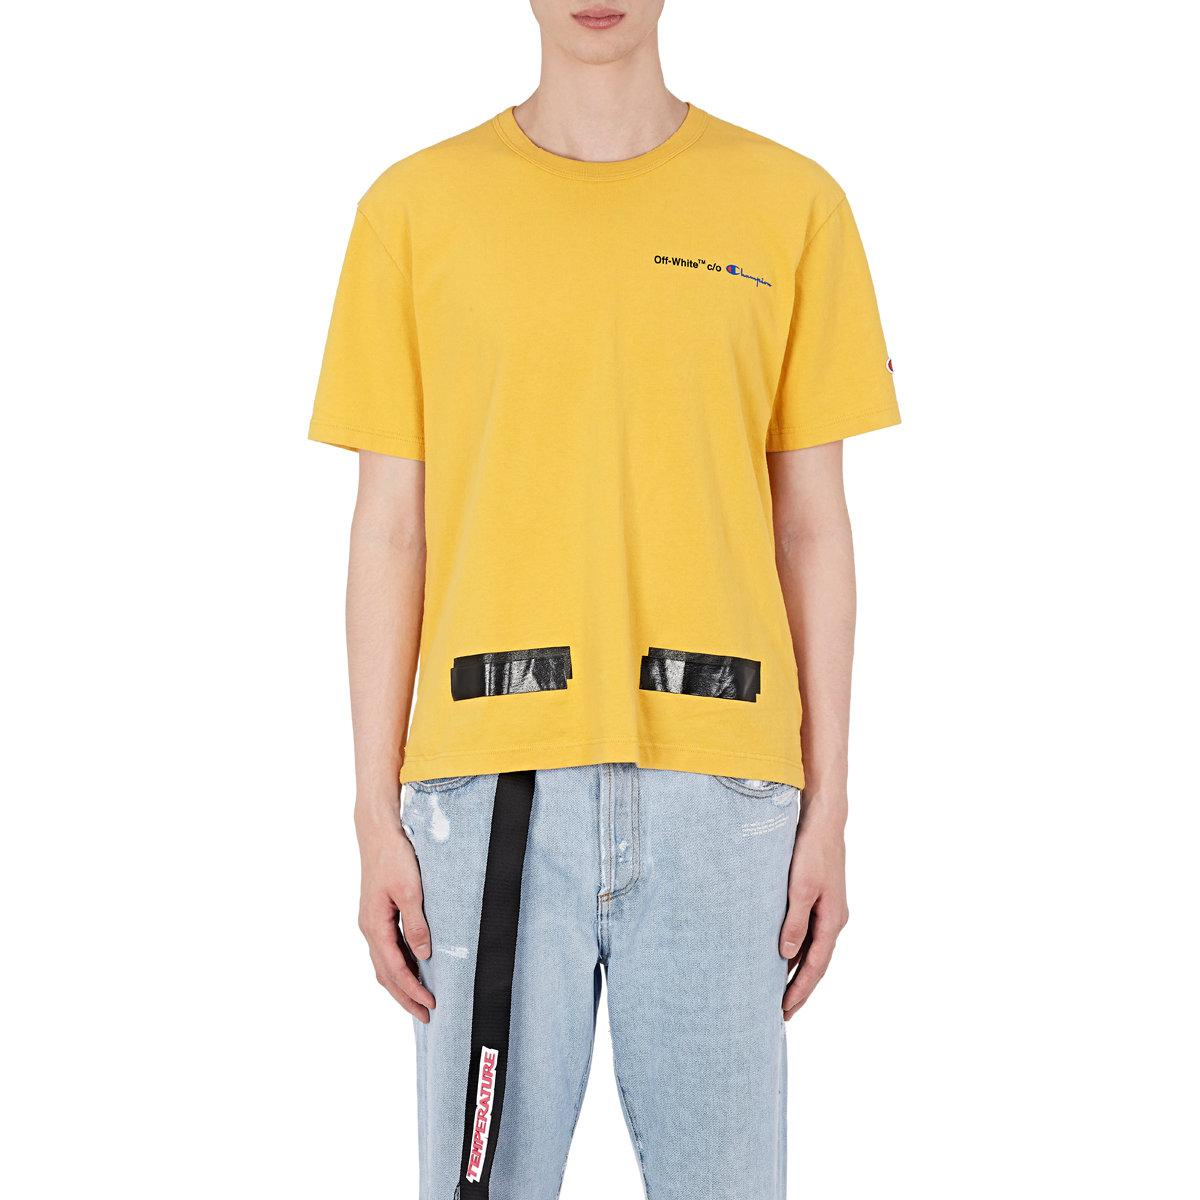 cf2457c6 Off-White c/o Virgil Abloh Champion Cotton T in Yellow for Men - Lyst